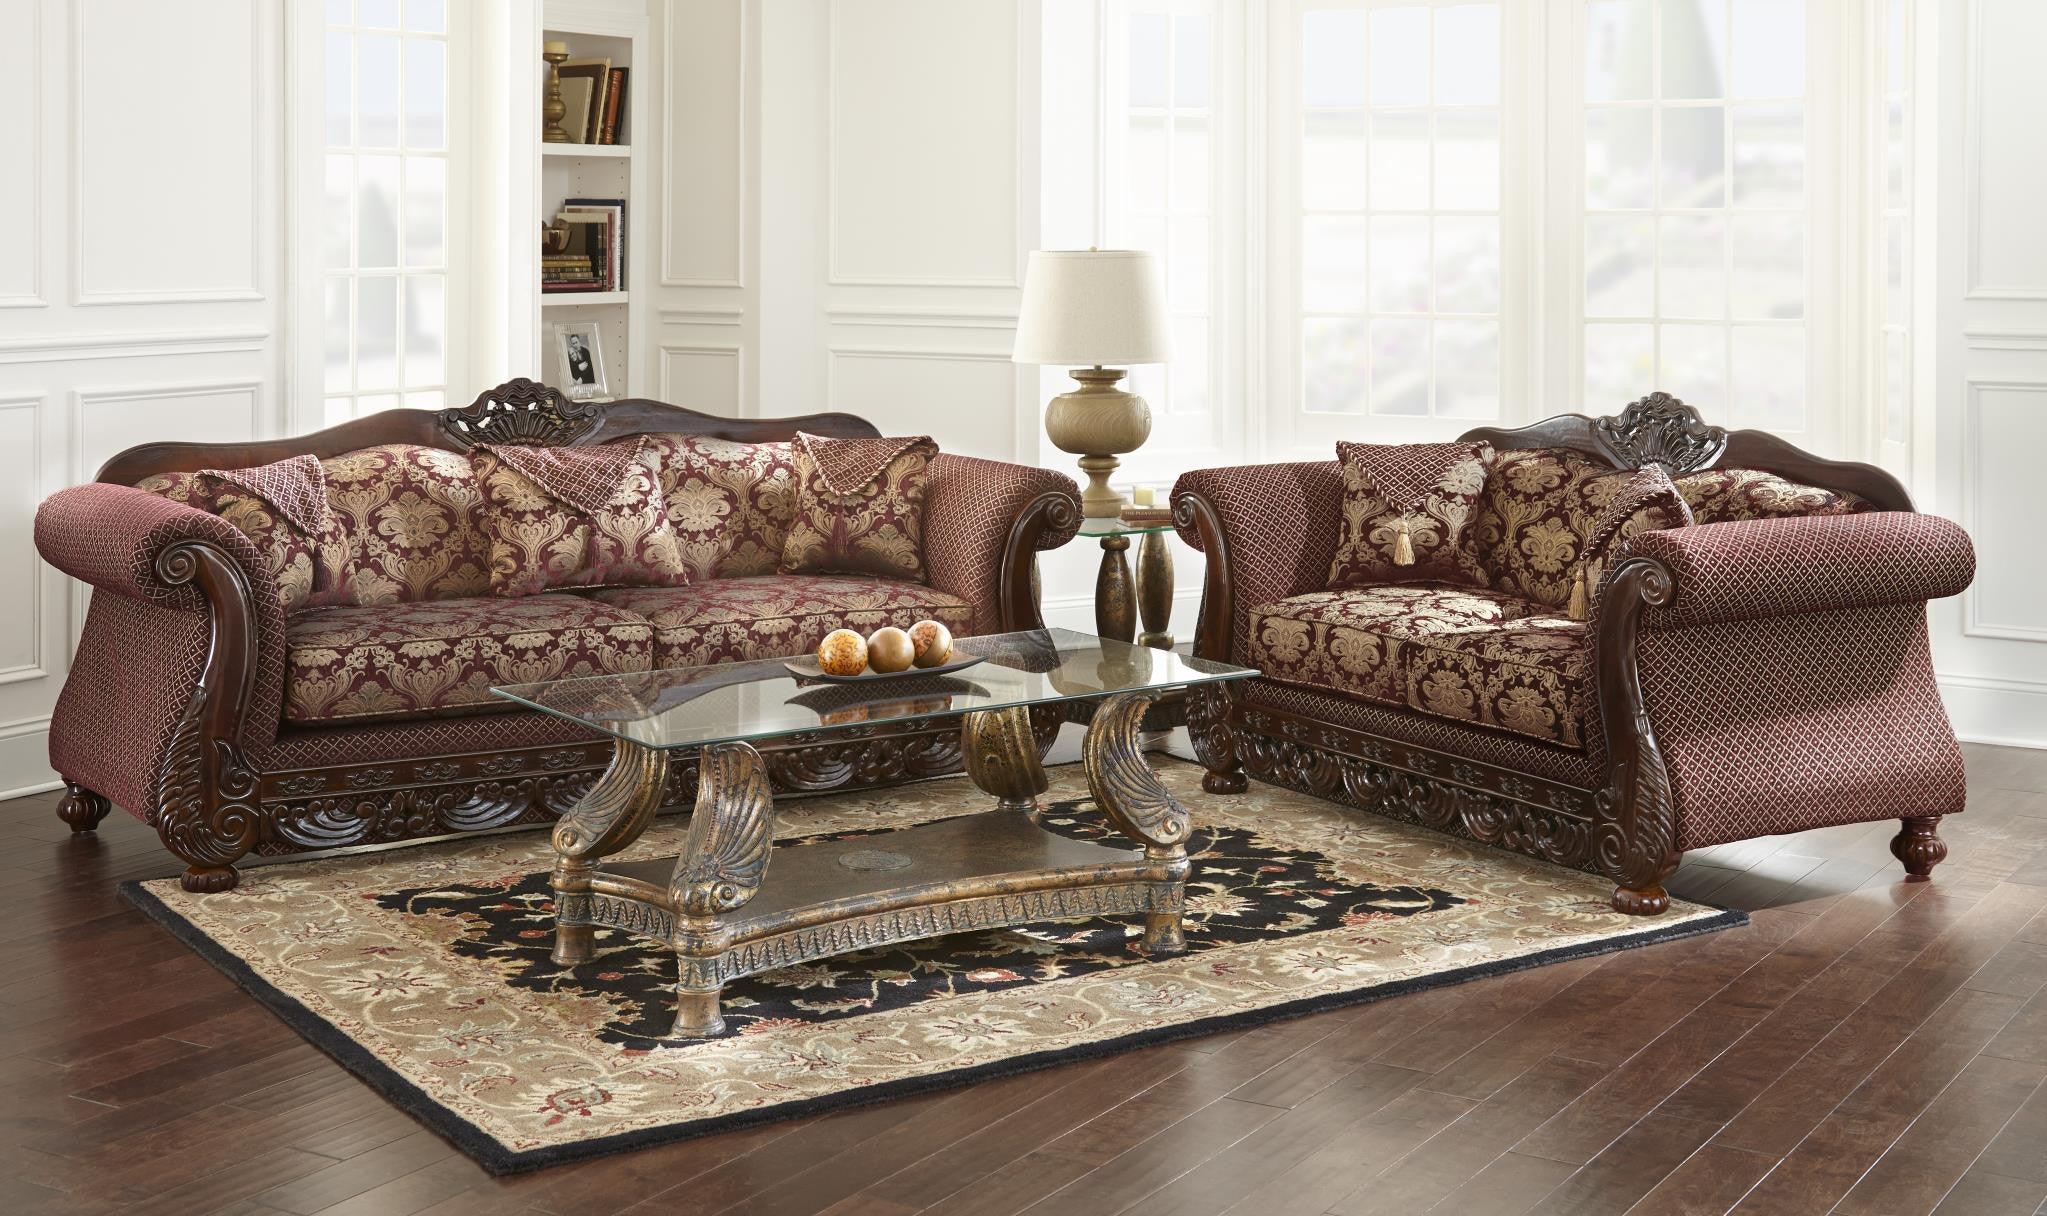 Domingo Elegant Living Room Set